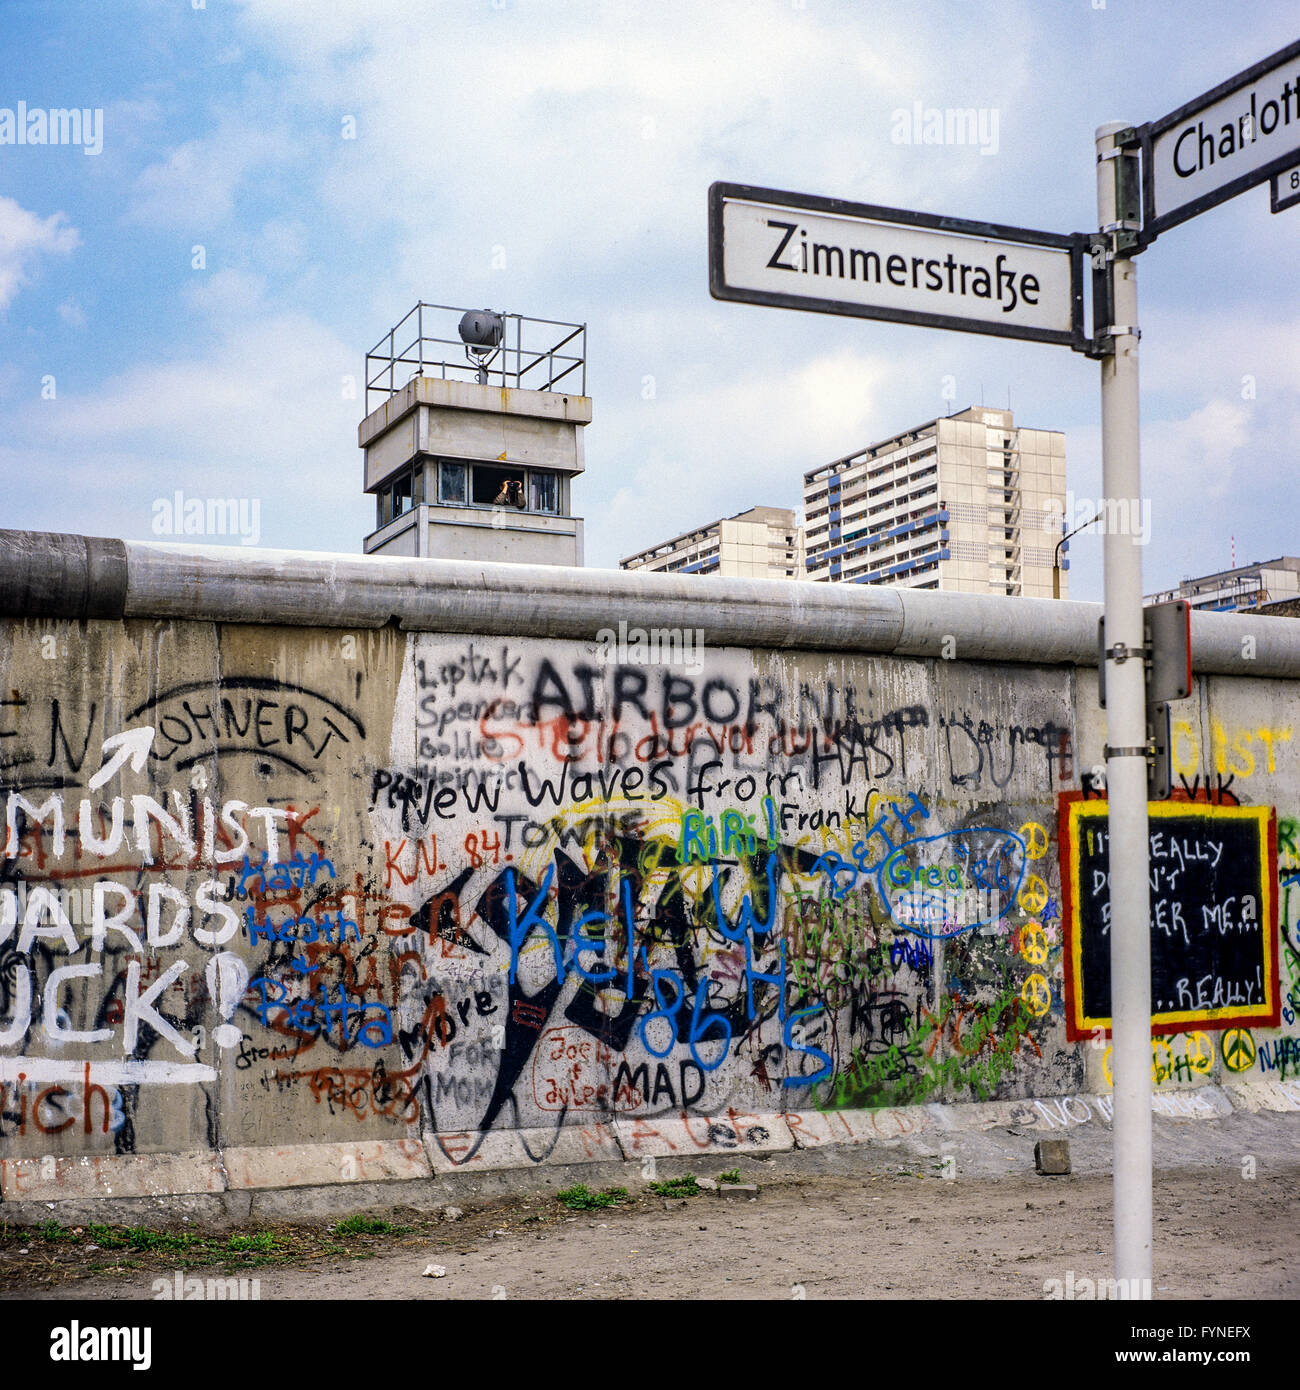 August 1986, graffitis on the Berlin Wall and East Berlin watchtower, Zimmerstrasse street sign, Kreuzberg, West - Stock Image